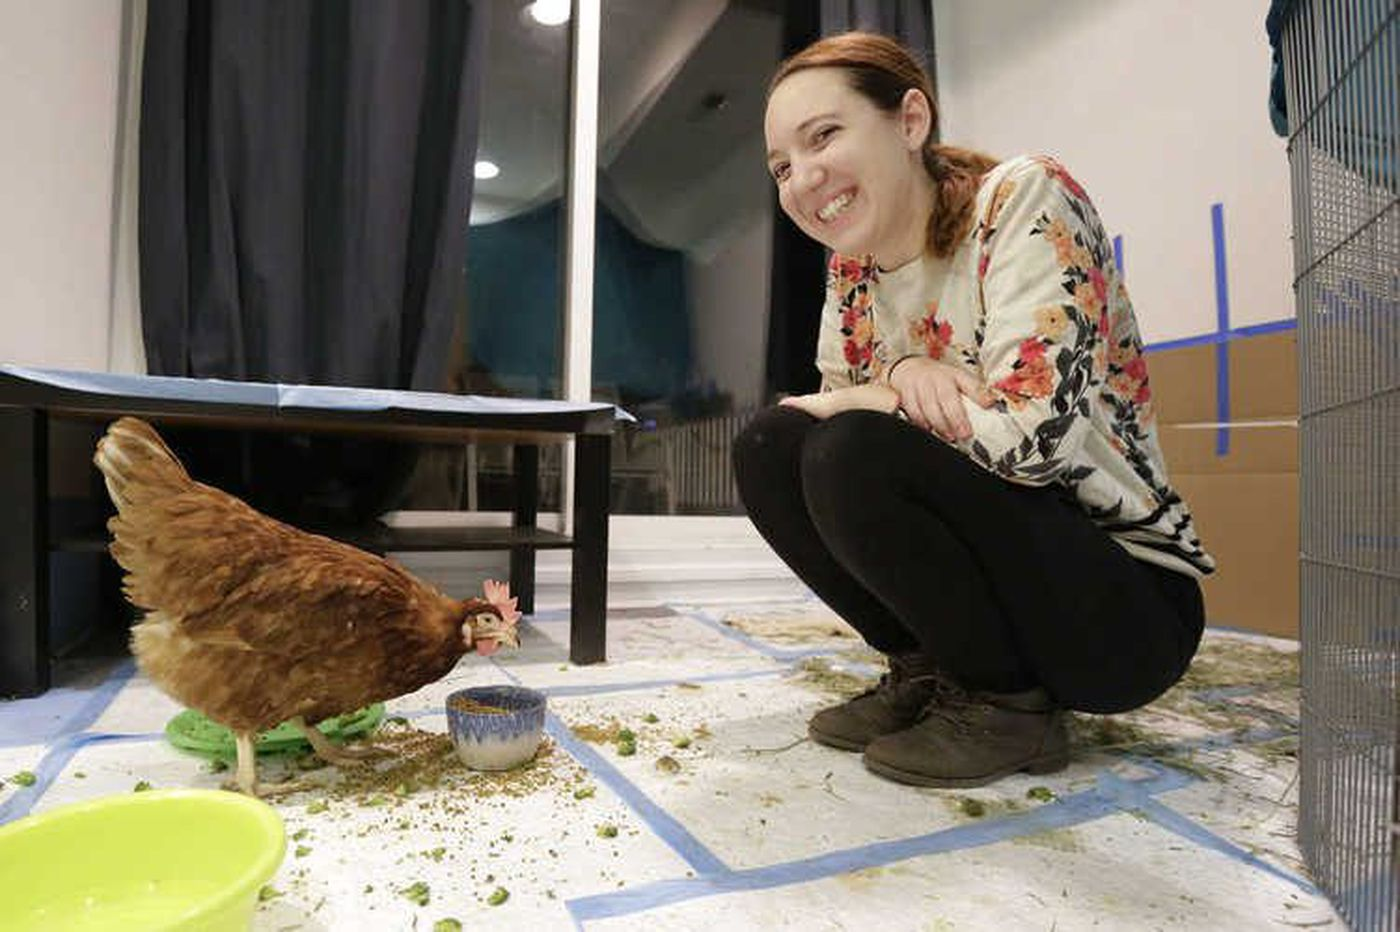 Meet four chickens saved from a slaughterhouse by Philly activists